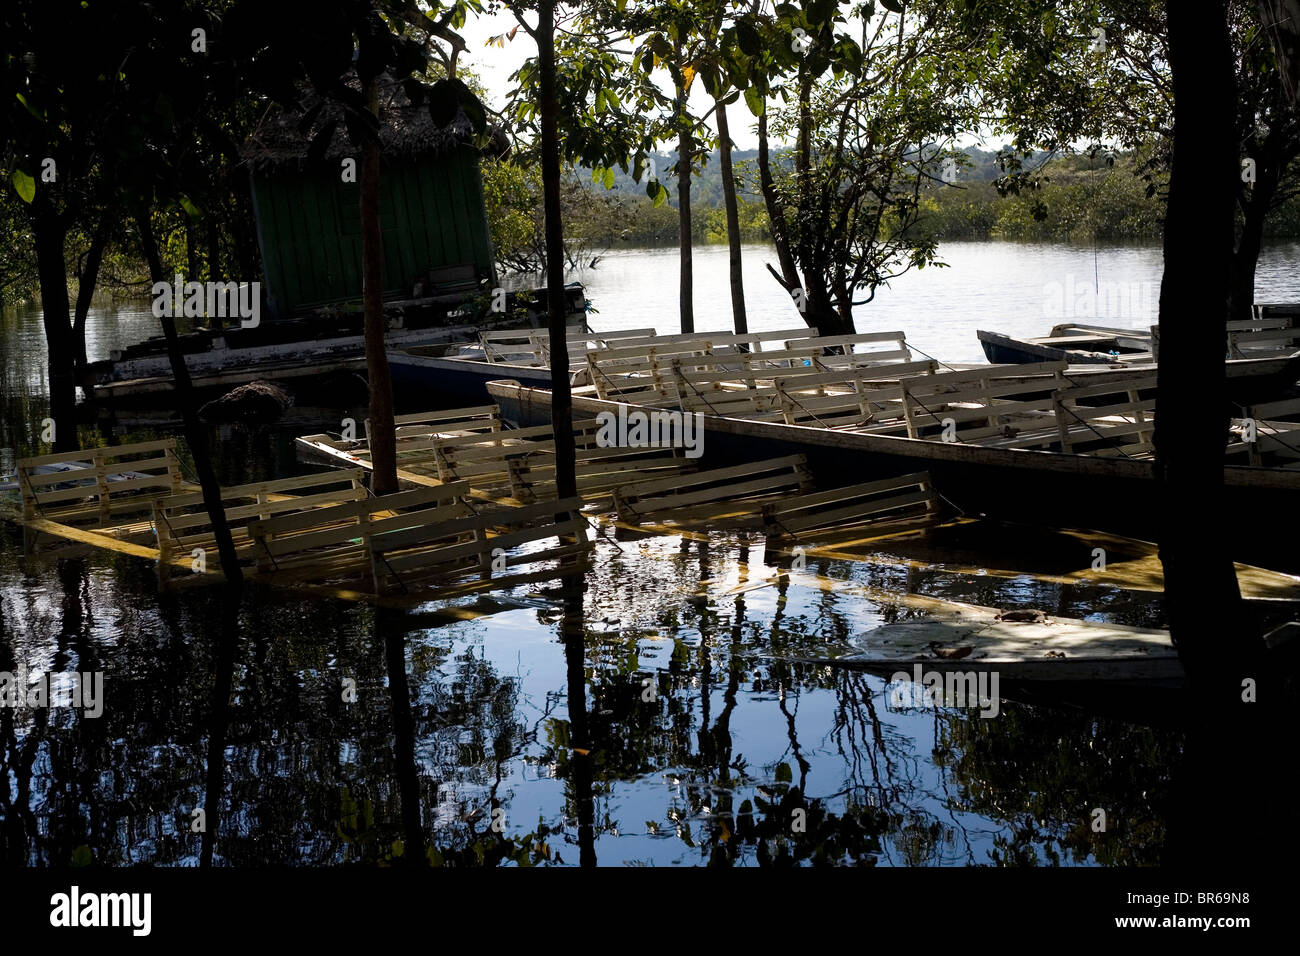 Waterlogged boats in the Amazon River, Brazil Stock Photo